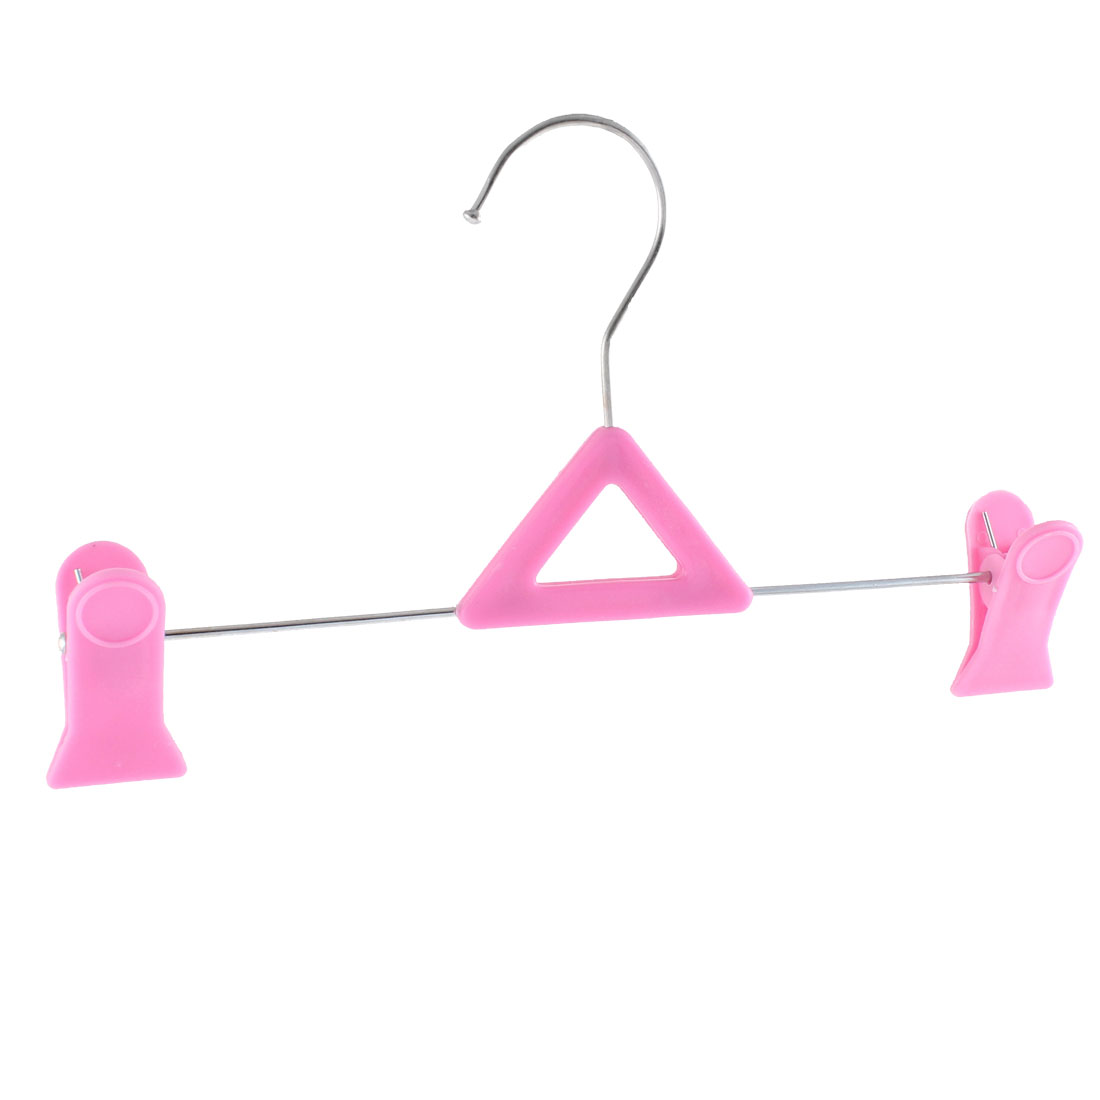 Clothes Shoes Socks Clips Hanger Drying Rack Pink